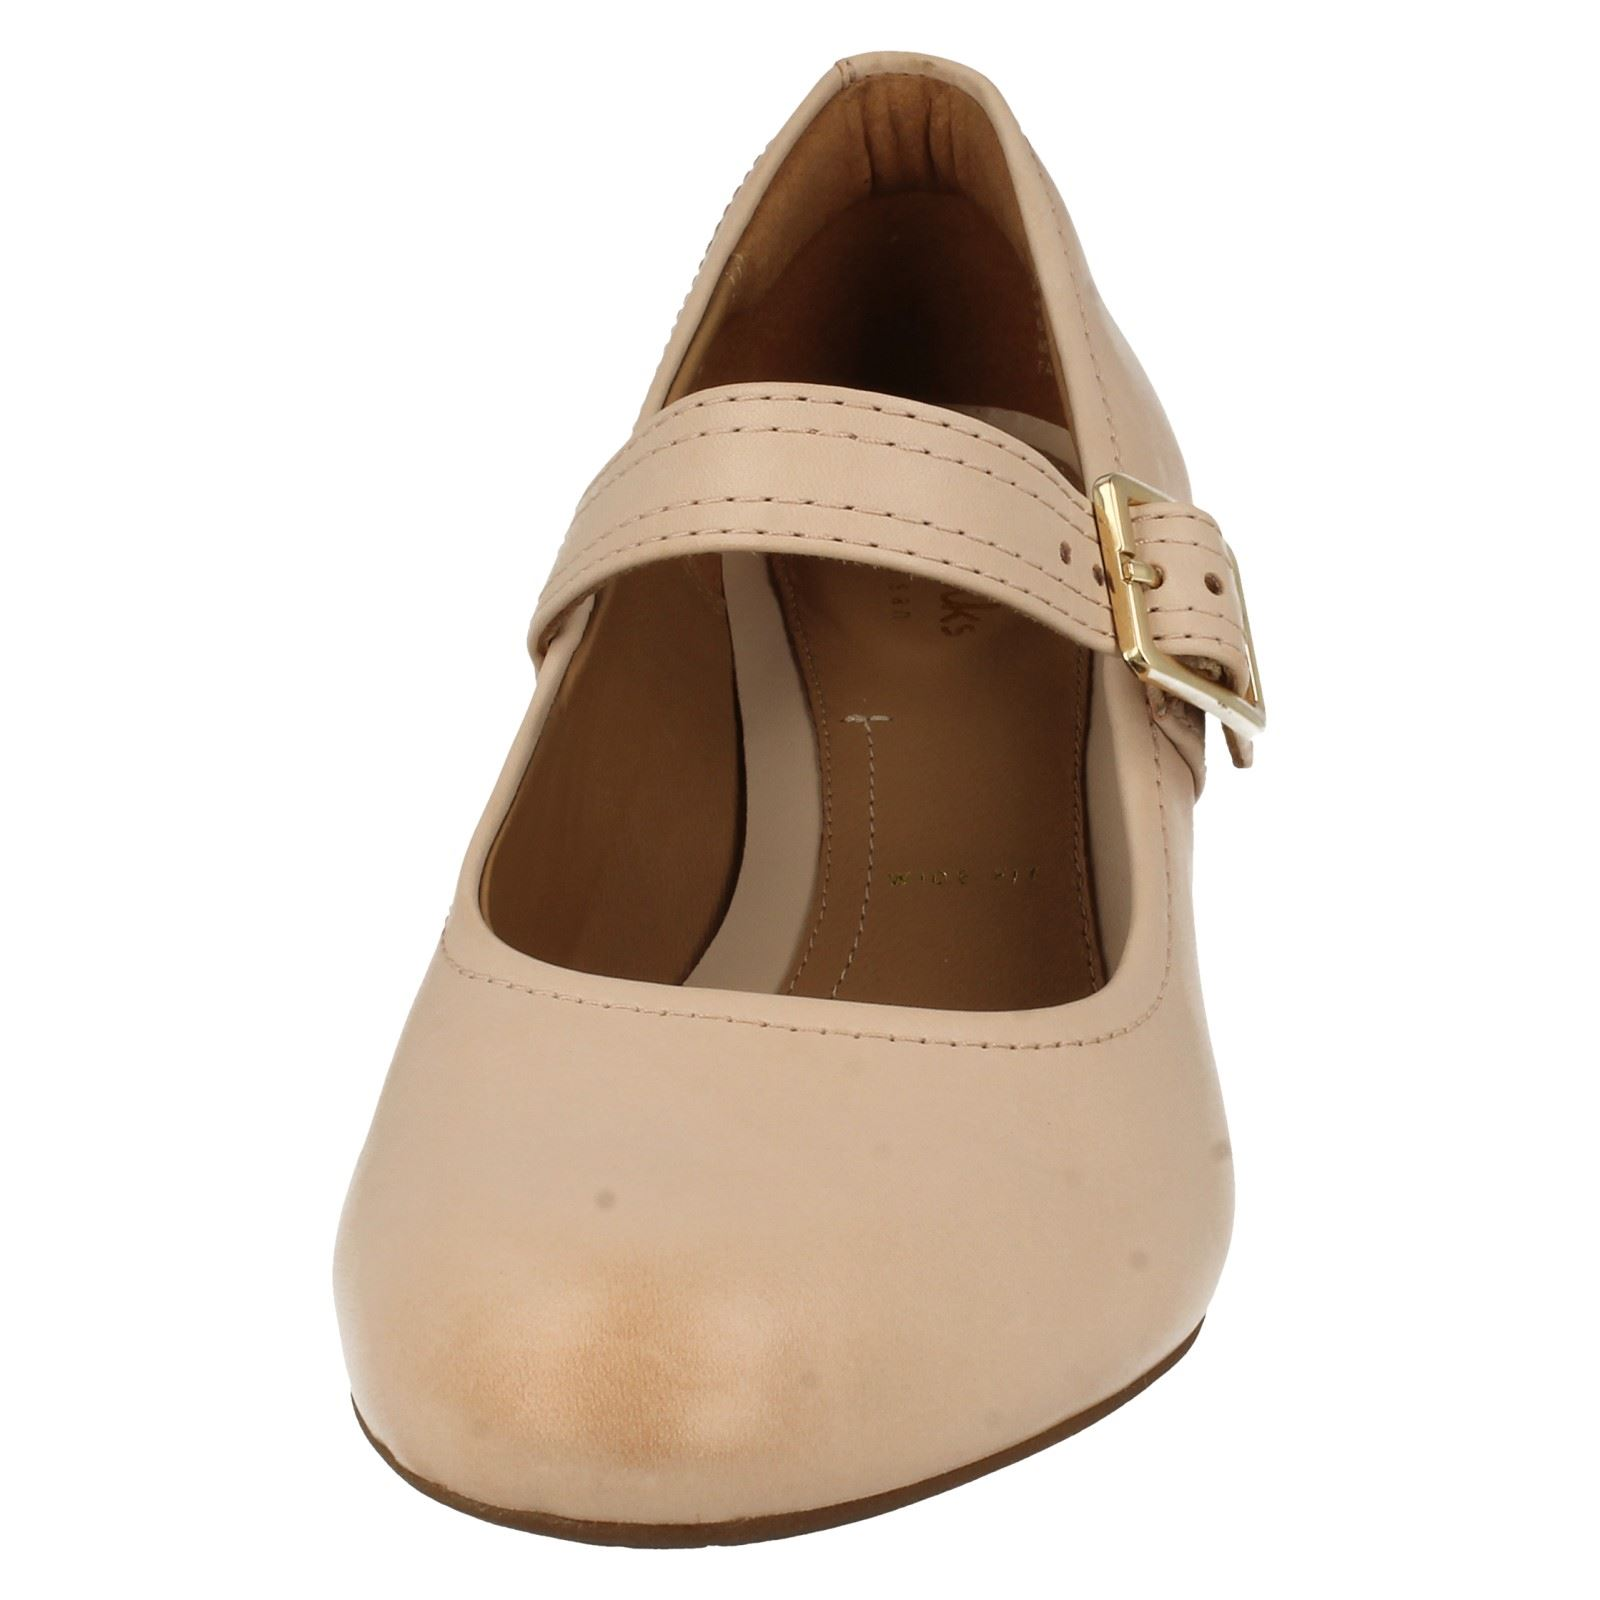 Clarks Shoes Jane pink Blush Mary Ladies denny Court Date dTwI1qcxE